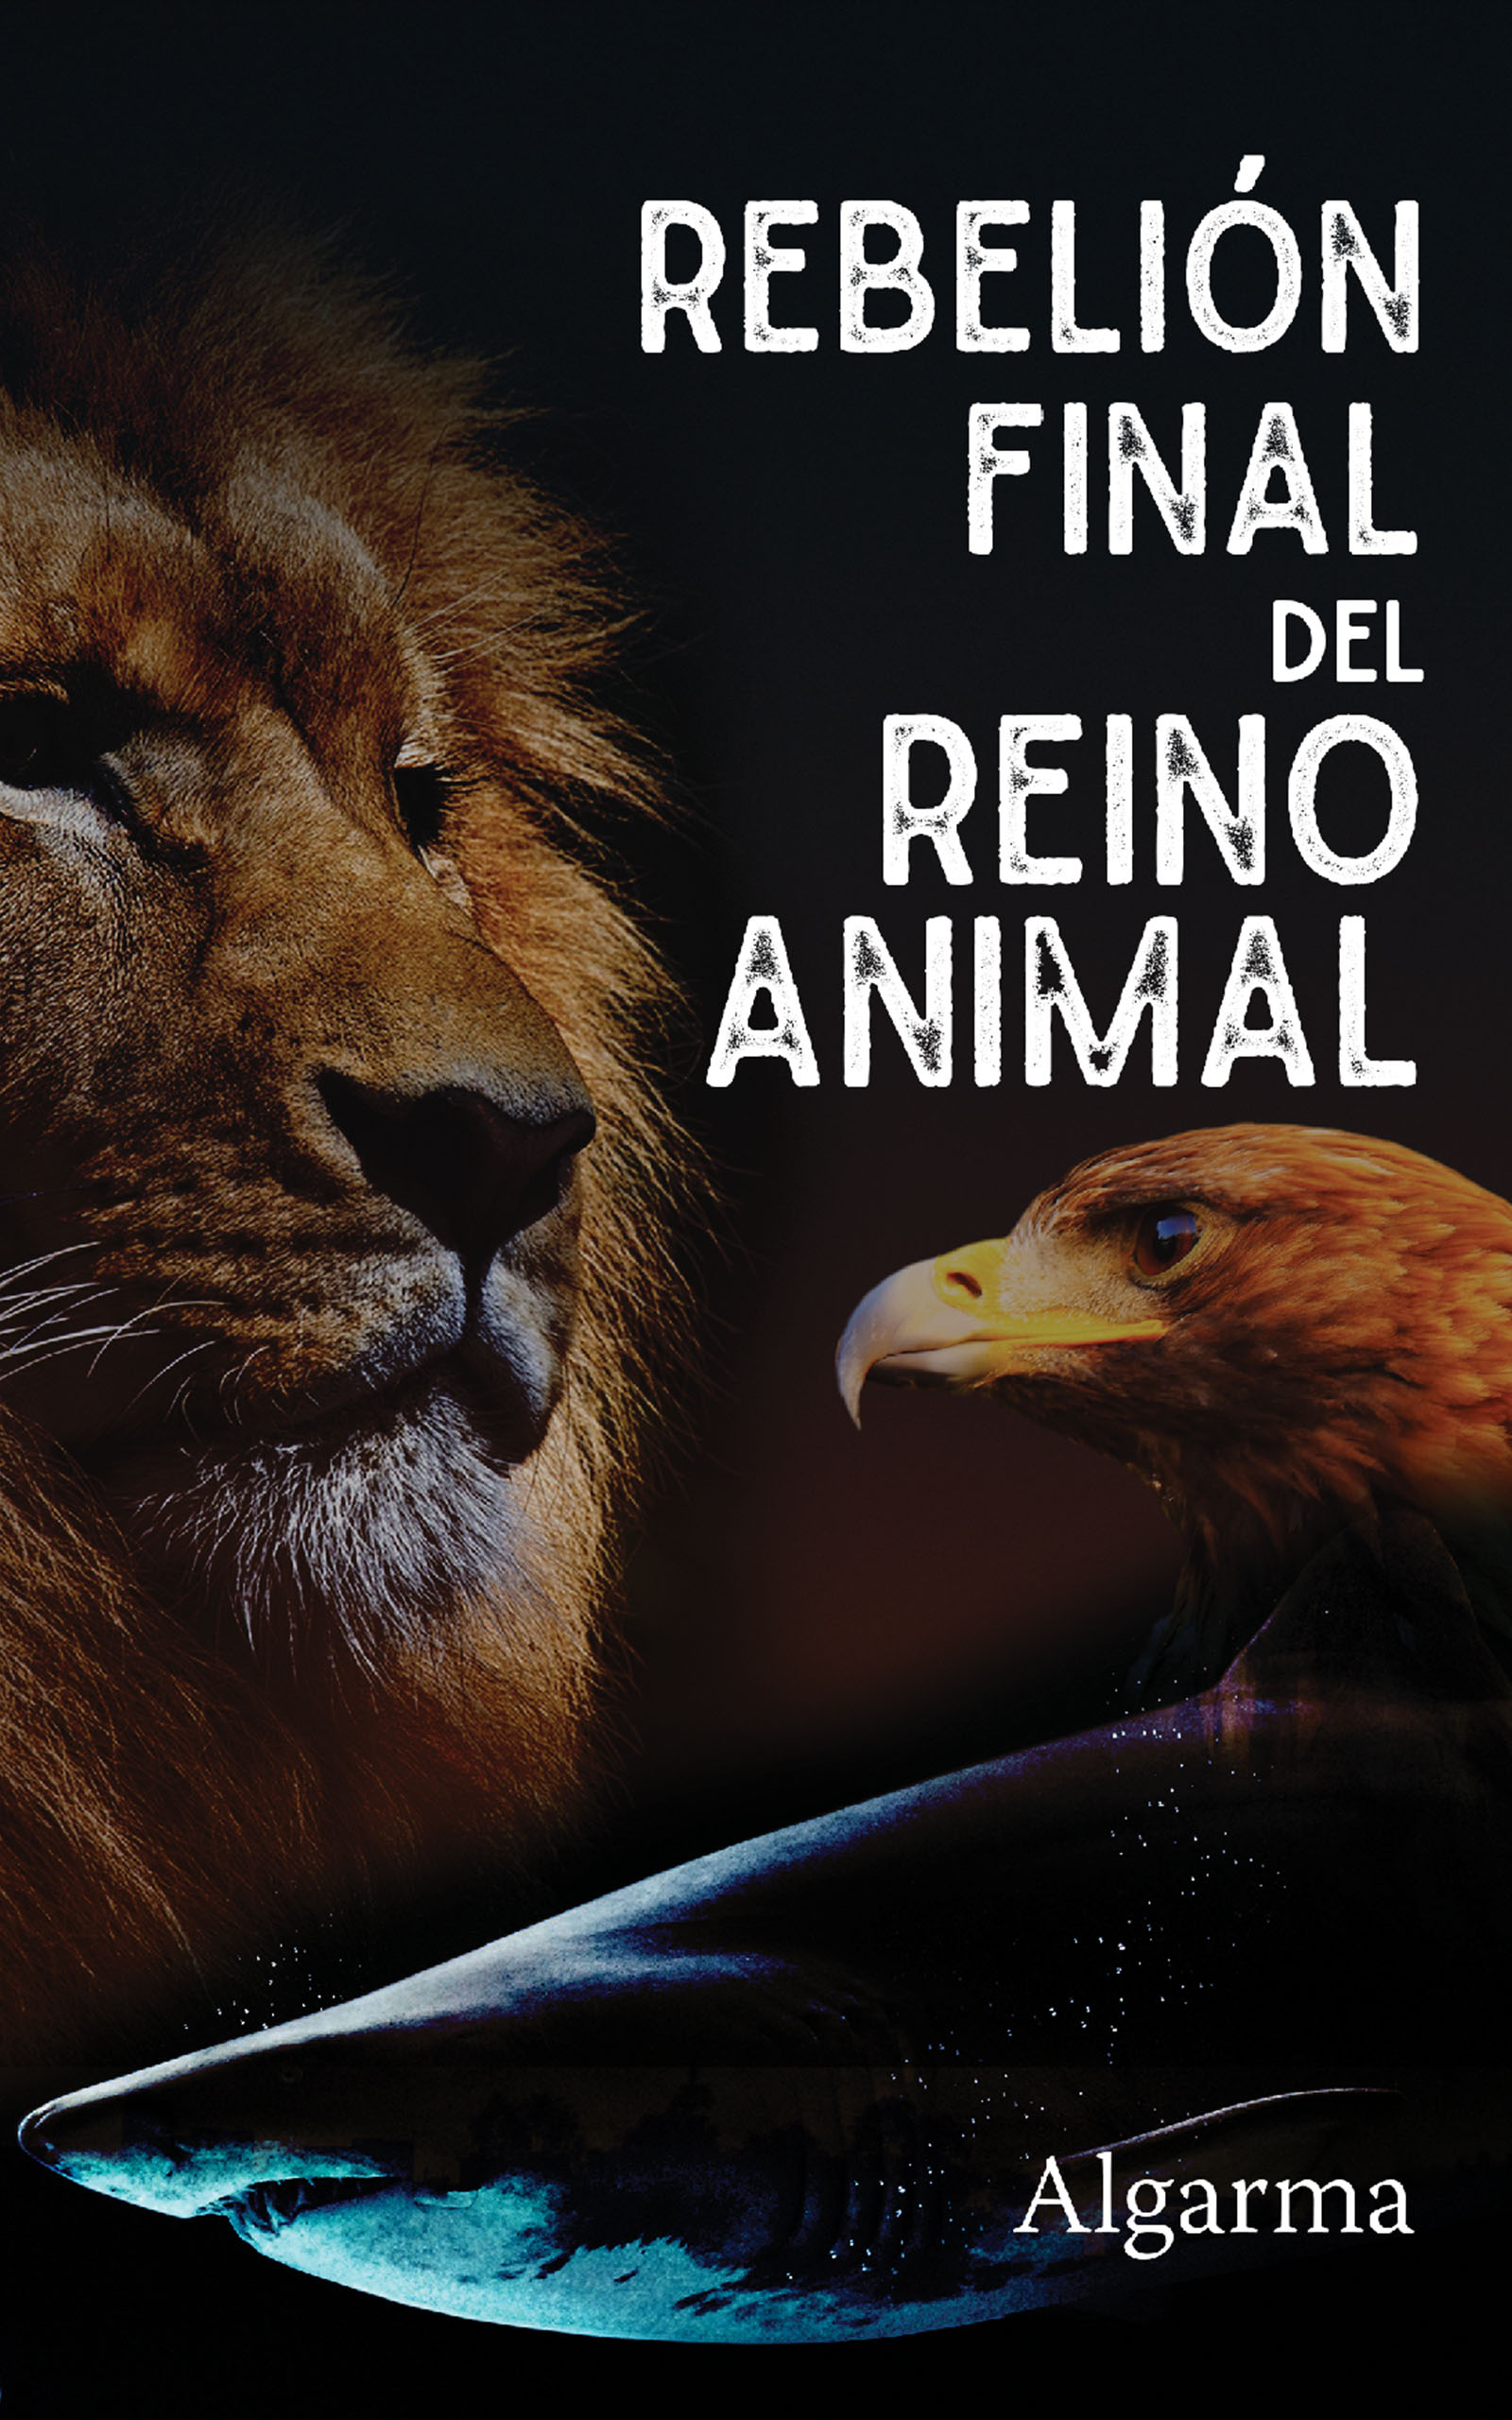 Rebelión final del Reino Animal, de Algarma